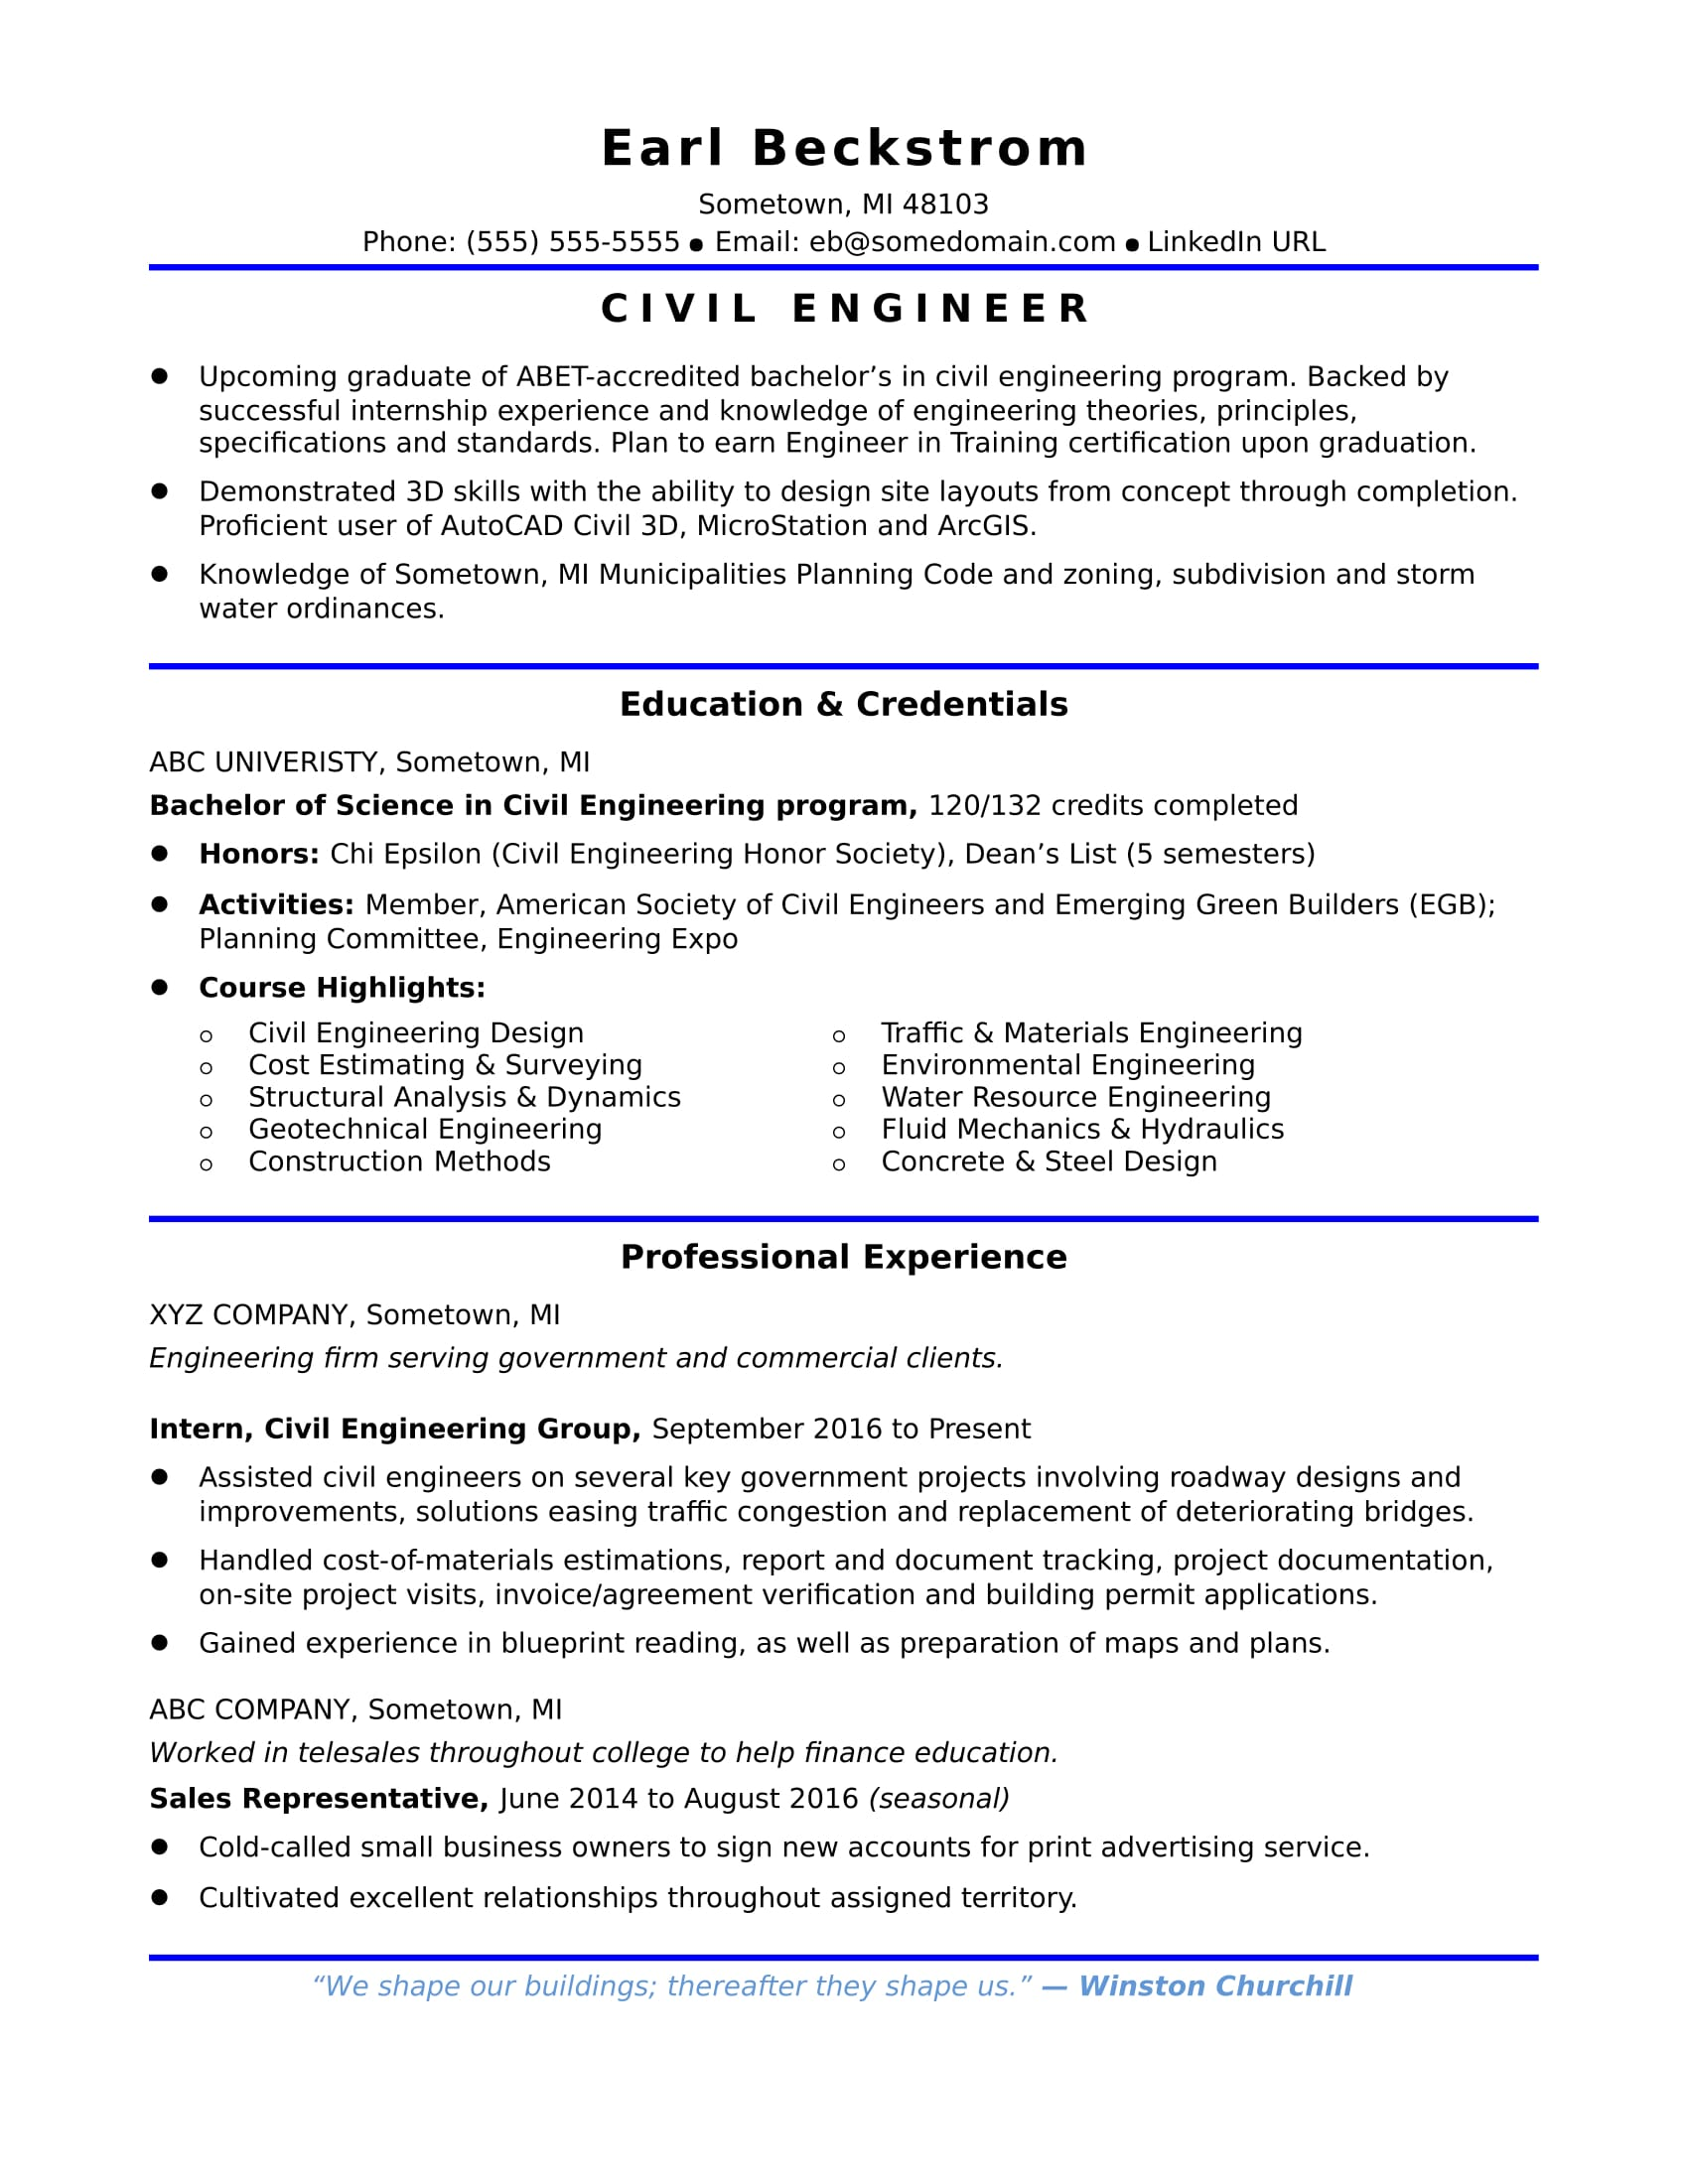 Sample Resume For An Entry Level Civil Engineer Monster